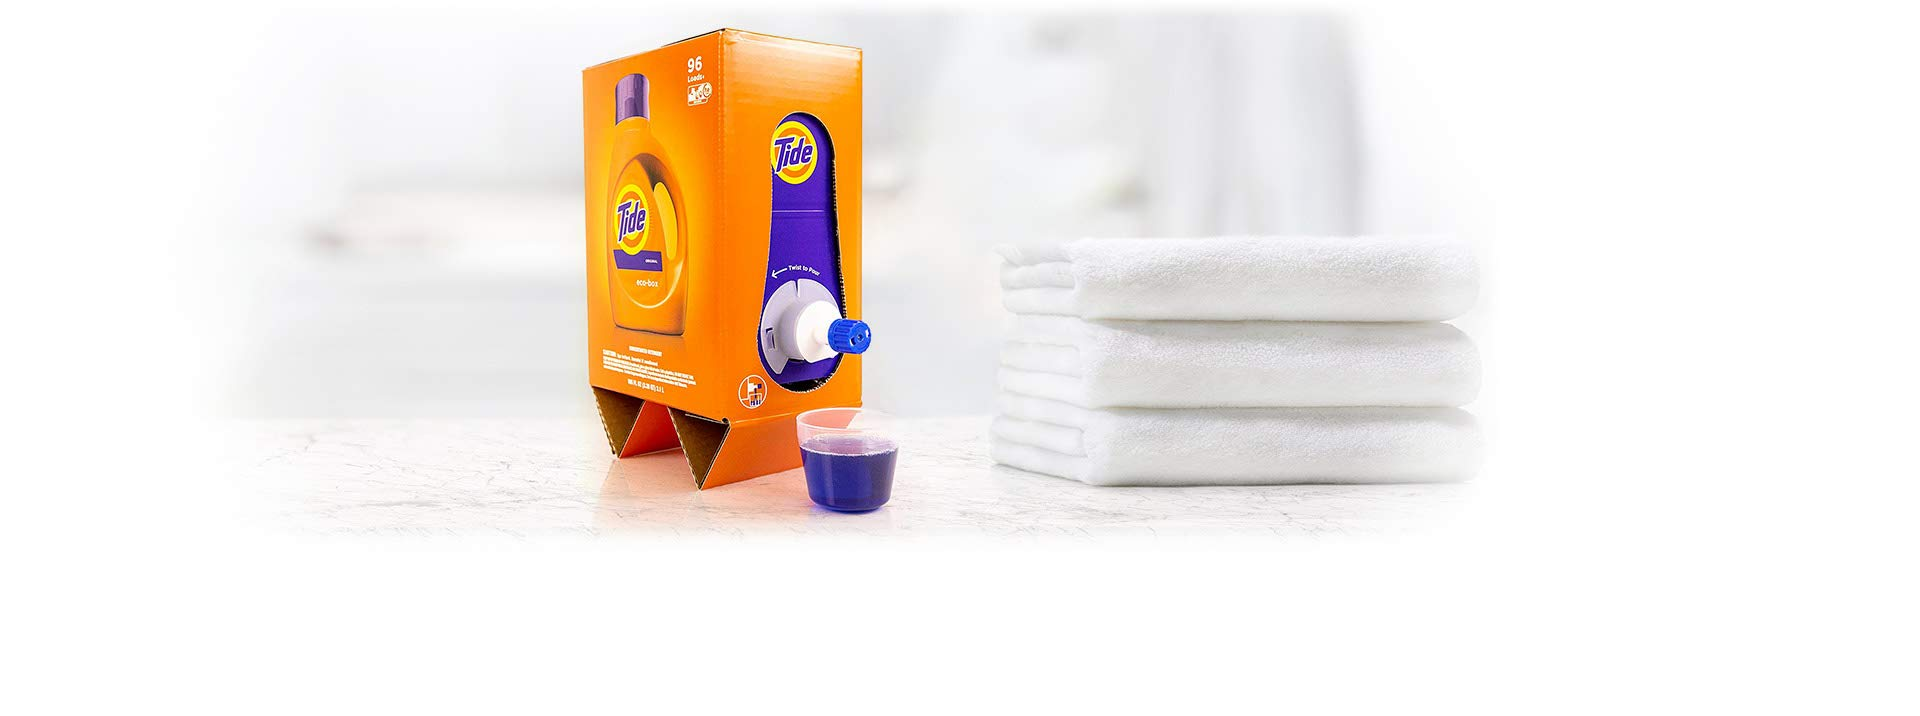 Tide Laundry Detergent Liquid Eco-Box, Concentrated, Original Scent, 105 oz, HE Compatible, 96 Loads by Tide (Image #2)